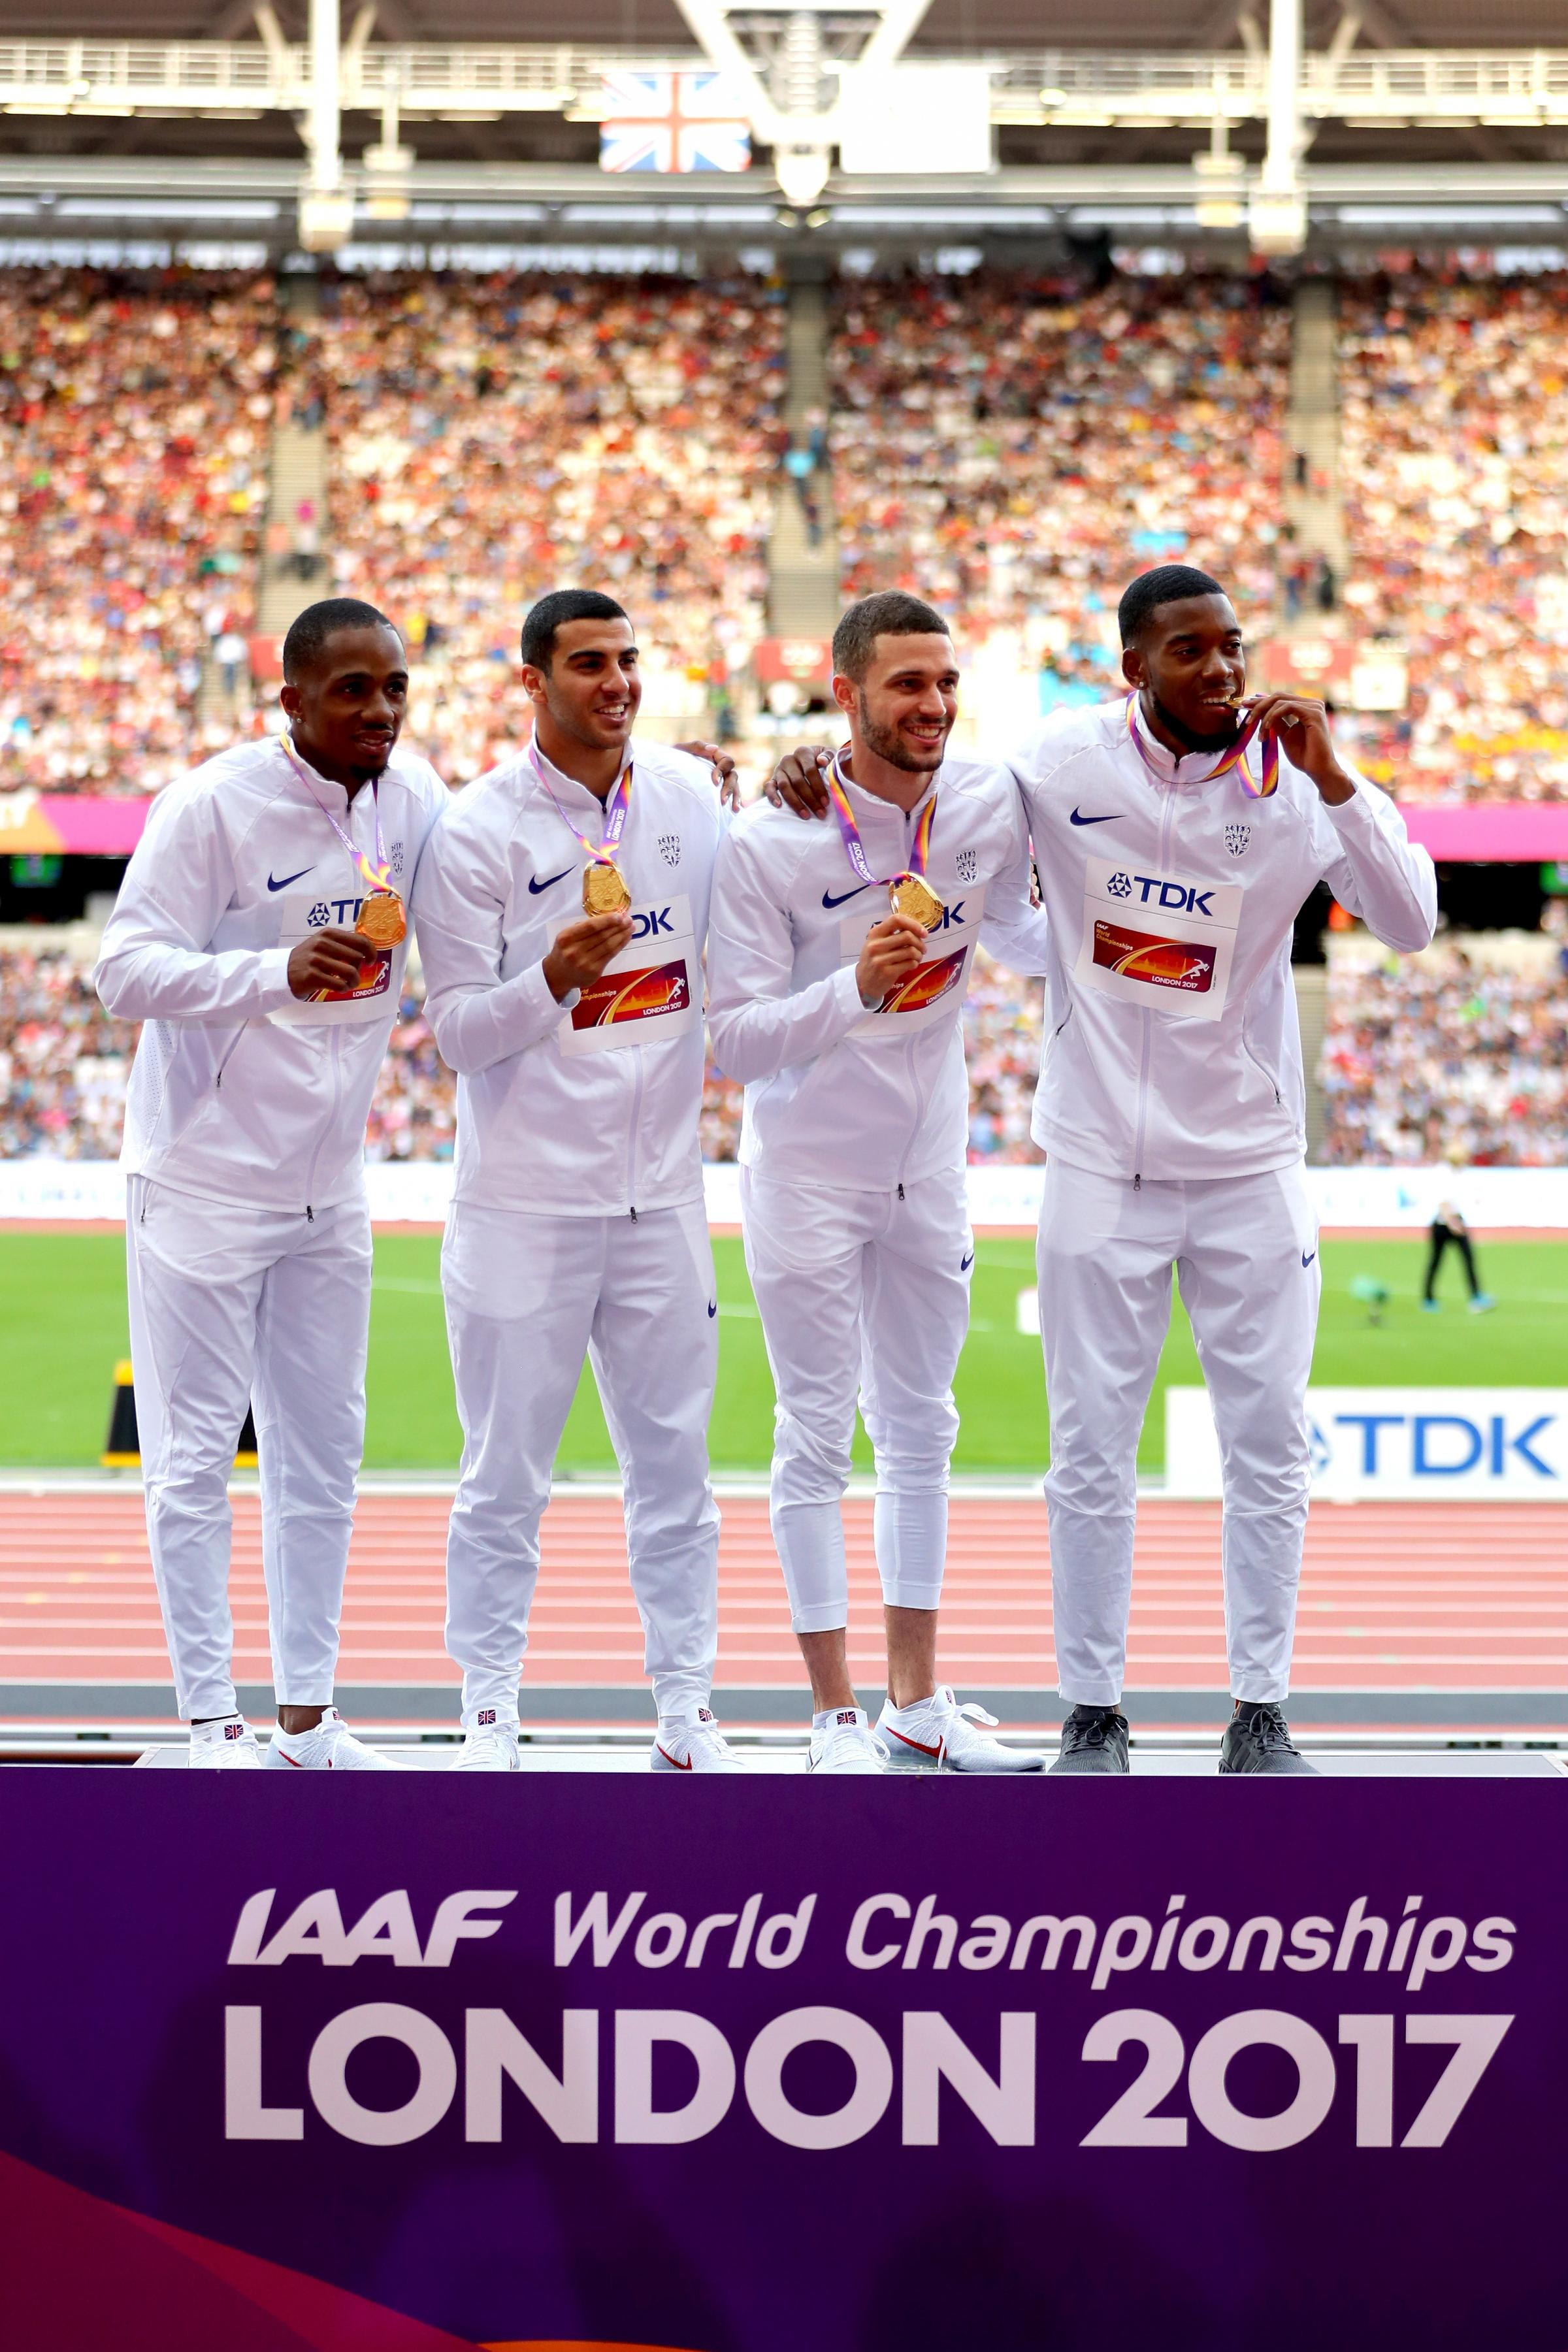 LONDON, ENGLAND - AUGUST 13:  (L-R)  Chijindu Ujah, Adam Gemili, Daniel Talbot and Nethaneel Mitchell-Blake of Great Britain, gold, pose with their medals for the Men's 4x100 Metres Relay during day ten of the 16th IAAF World Athletics Championships L